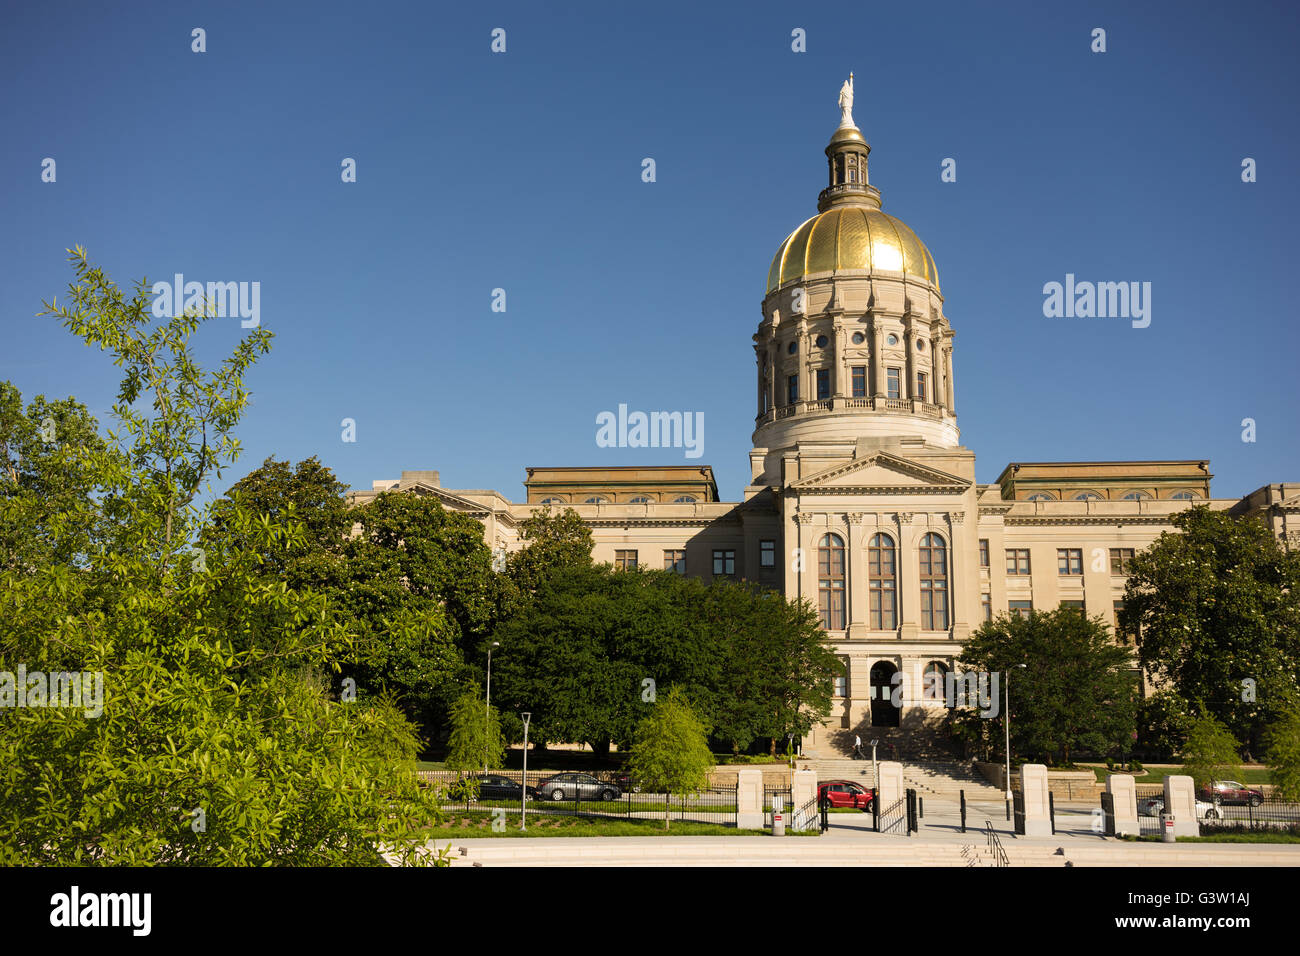 Atlanta Georgia State Capital Gold Dome City Architecture - Stock Image